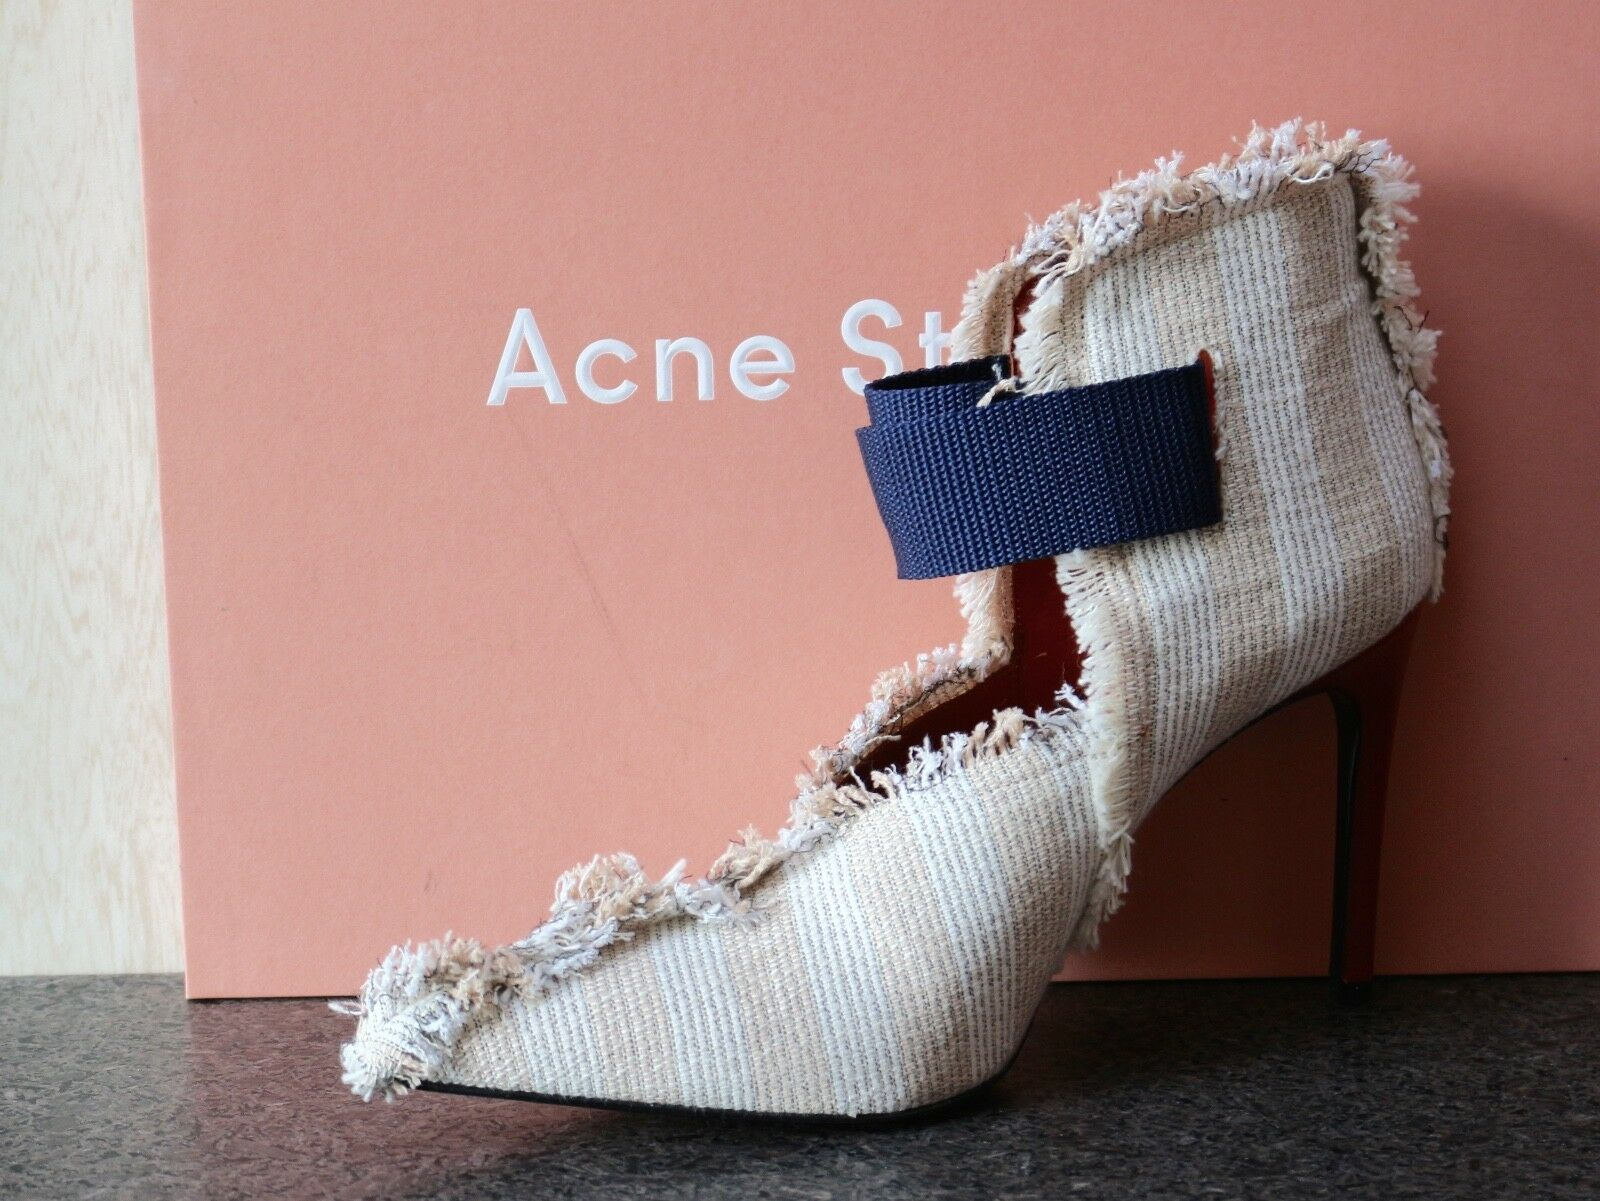 NIB ACNE STUDIO BOOTIES FRINGE FABRIC/LEATHER VALCRO POINTED TOE ANKLE BOOTIES STUDIO schuhes 39 4aa4c7